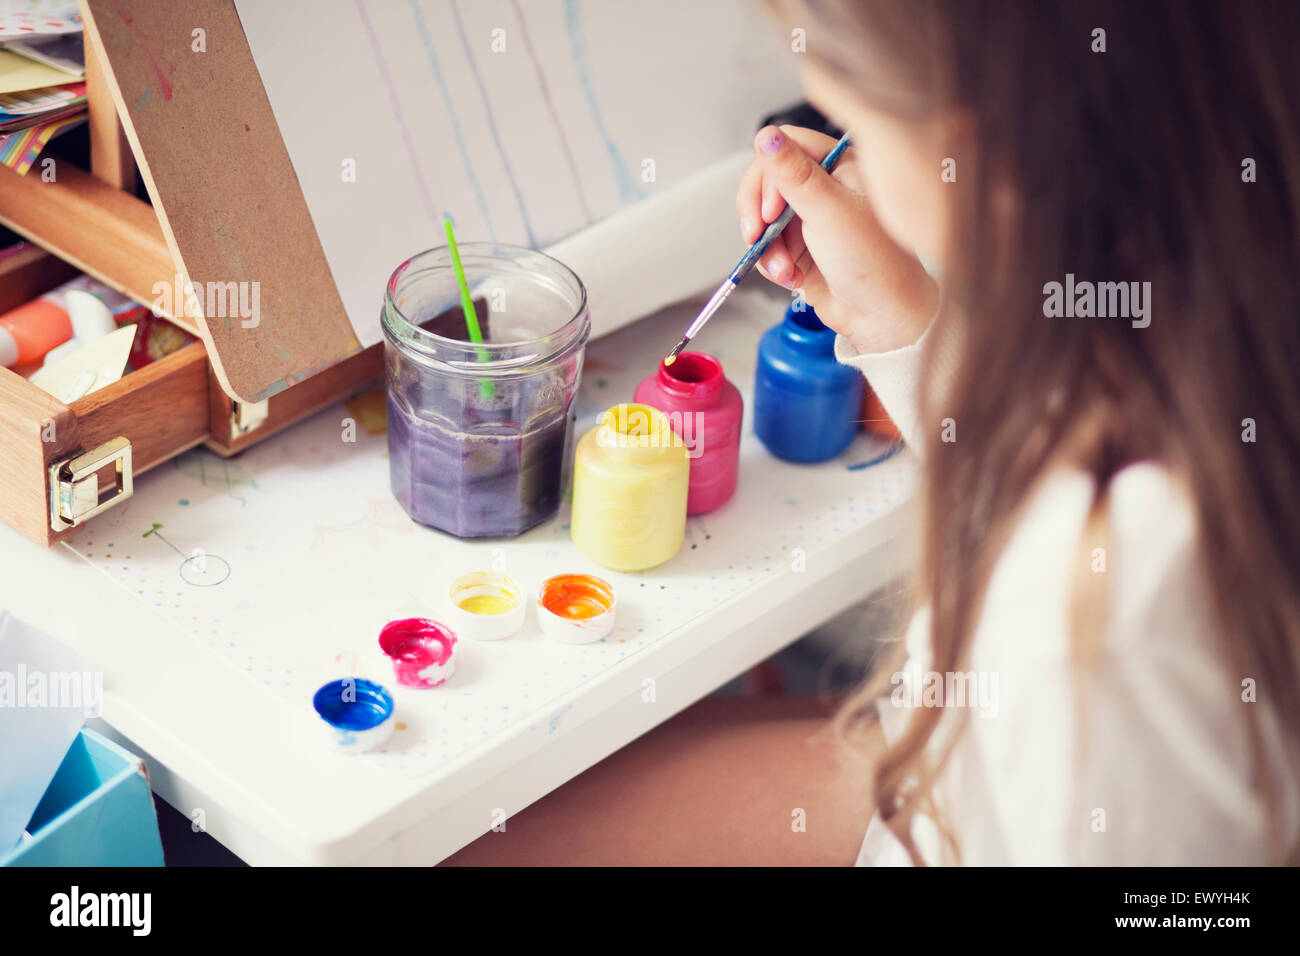 Elevated view of a girl painting - Stock Image